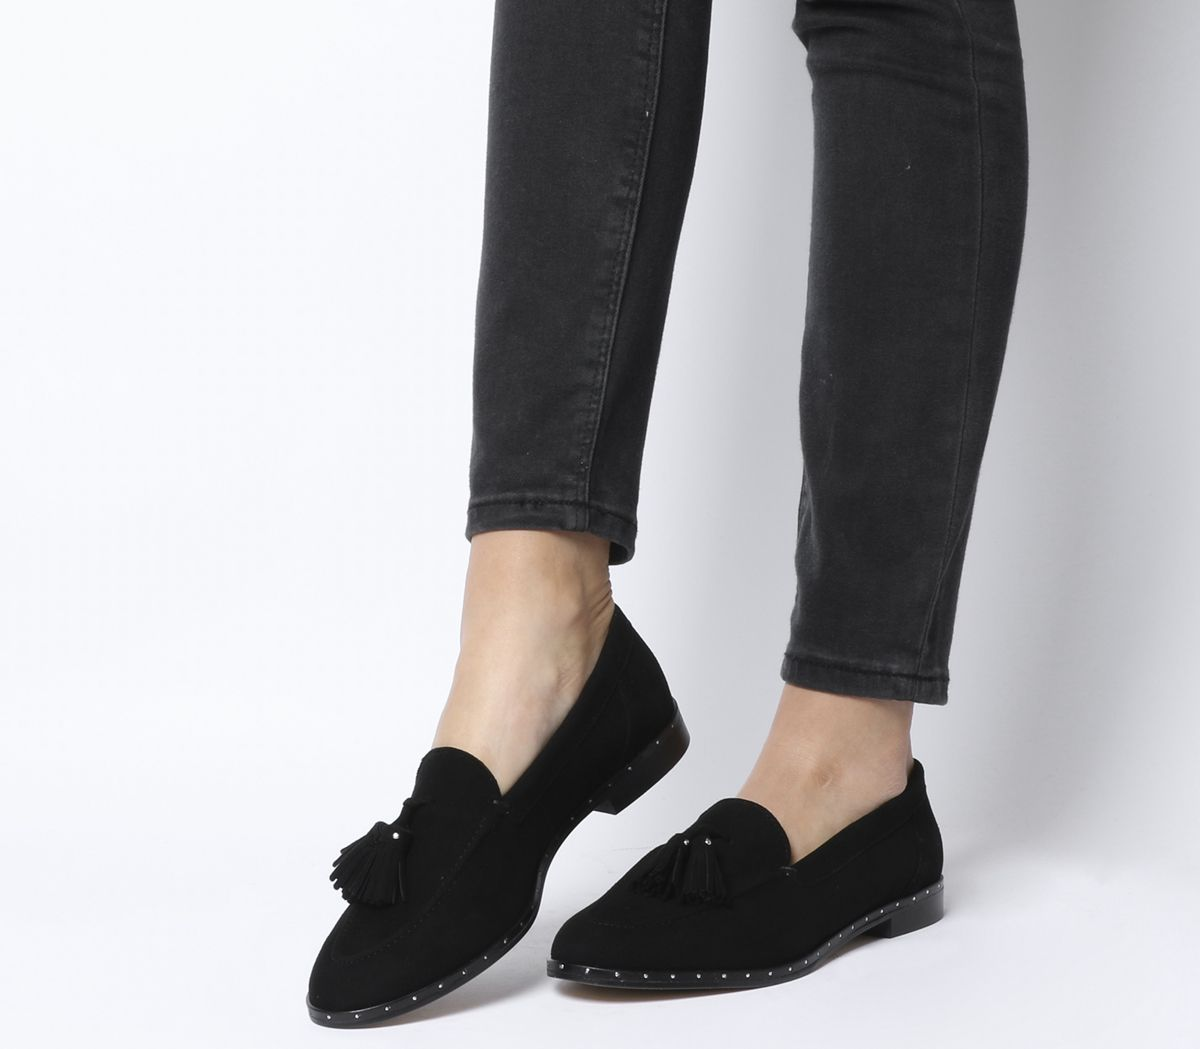 9d5ba05b592 Office Retro Tassel Loafers Black Suede With Studded Rand - Flats